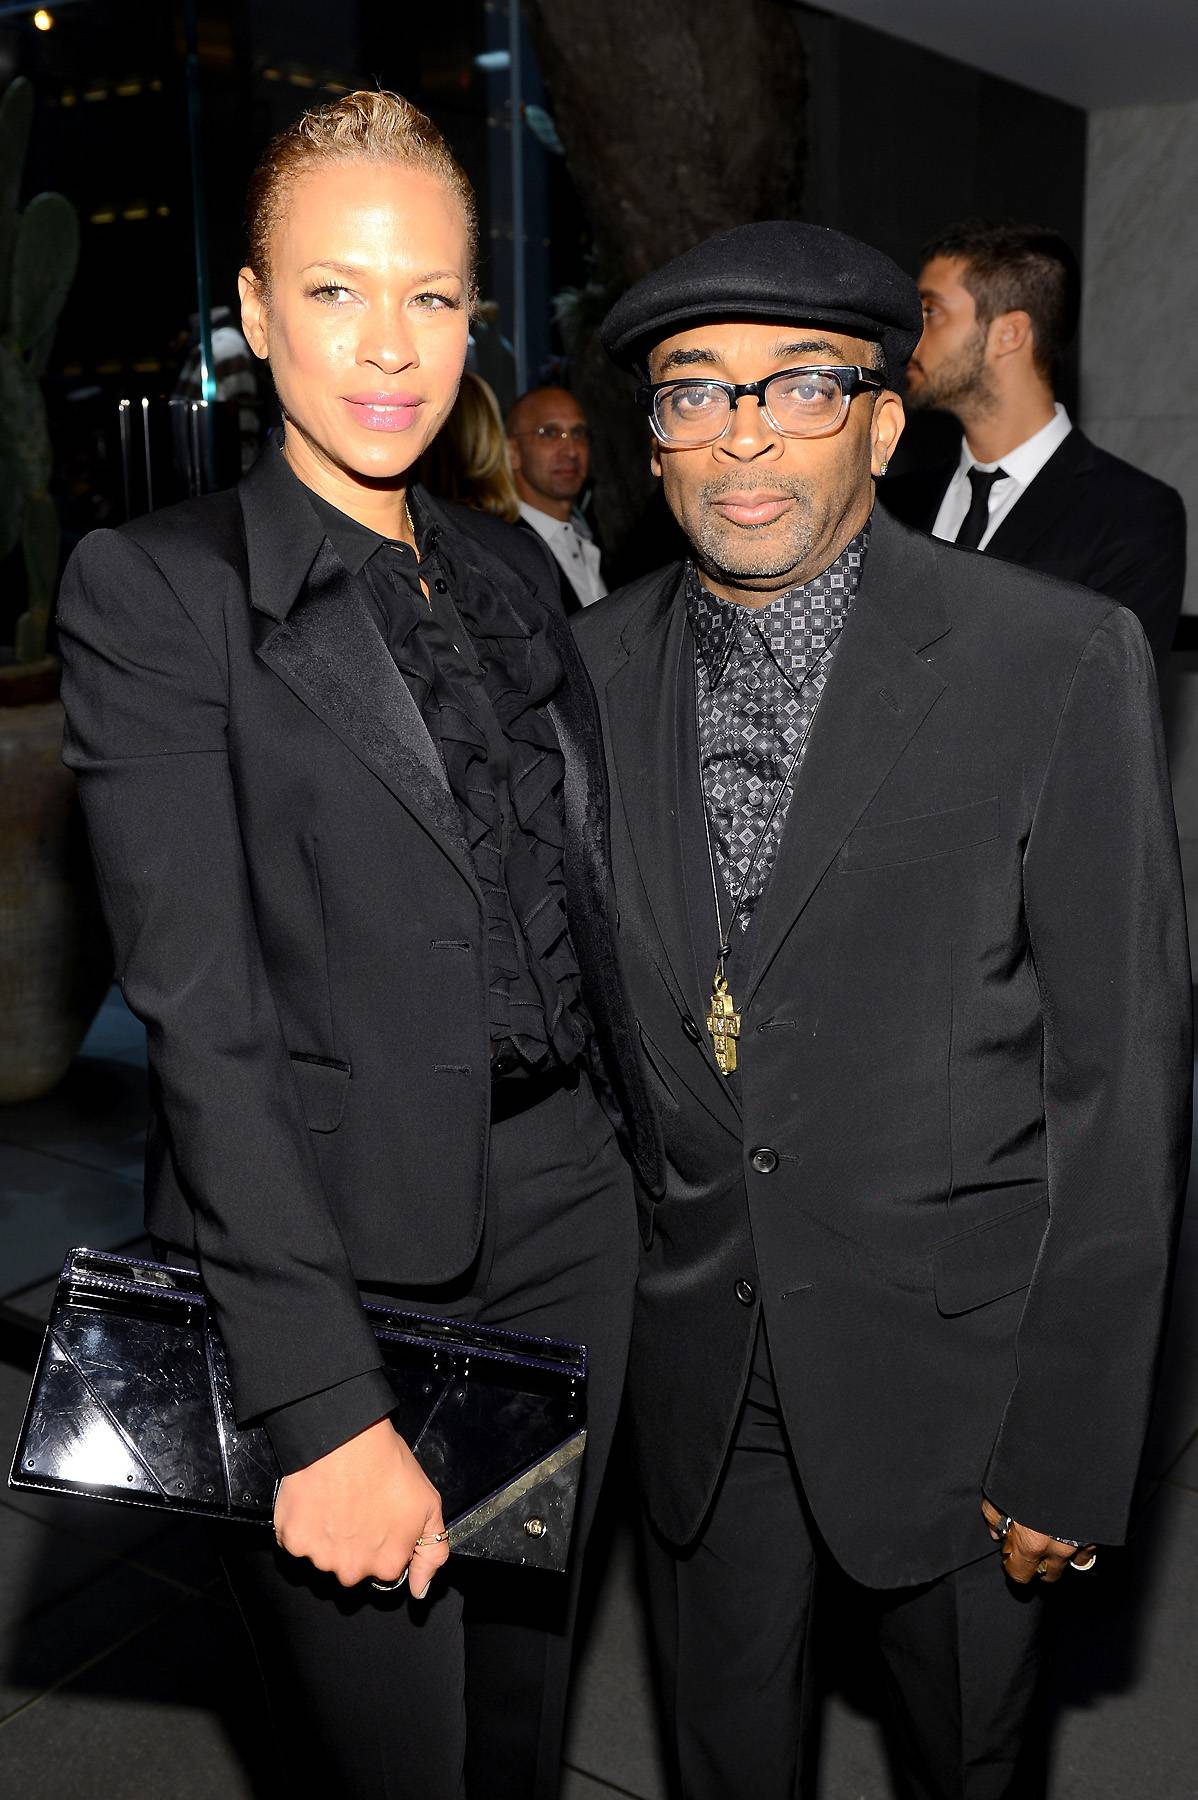 Spike Lee and Tonya Lewis Lee - Spike Lee couldn?t help but do the right thing and marry Tonya Lewis Lee on Oct. 2, 1993. Tonya met Spike at a dinner for the Congressional Black Caucus. Tonya said Spike came with a date, but after they crossed paths he introduced himself to her anyway. The rest is history.(Photo: Larry Busacca/Getty Images for Dolce & Gabbana)